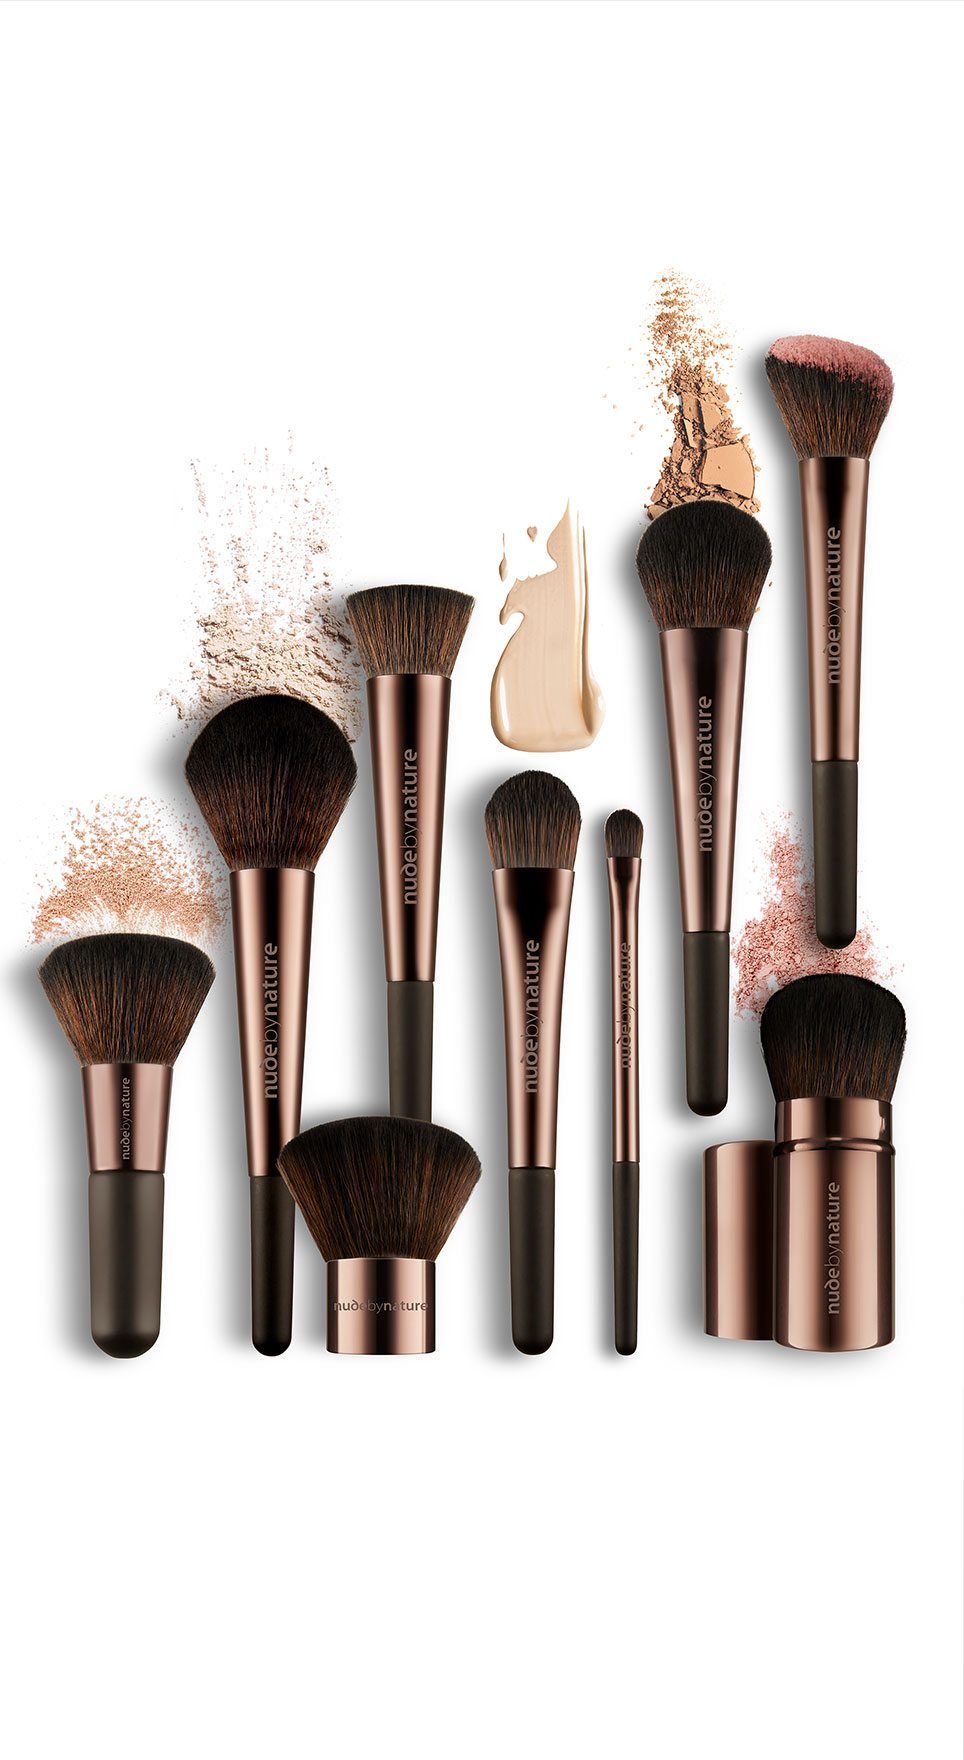 Makeup Brushes Sponge Collection: Top 5 Makeup Brushes